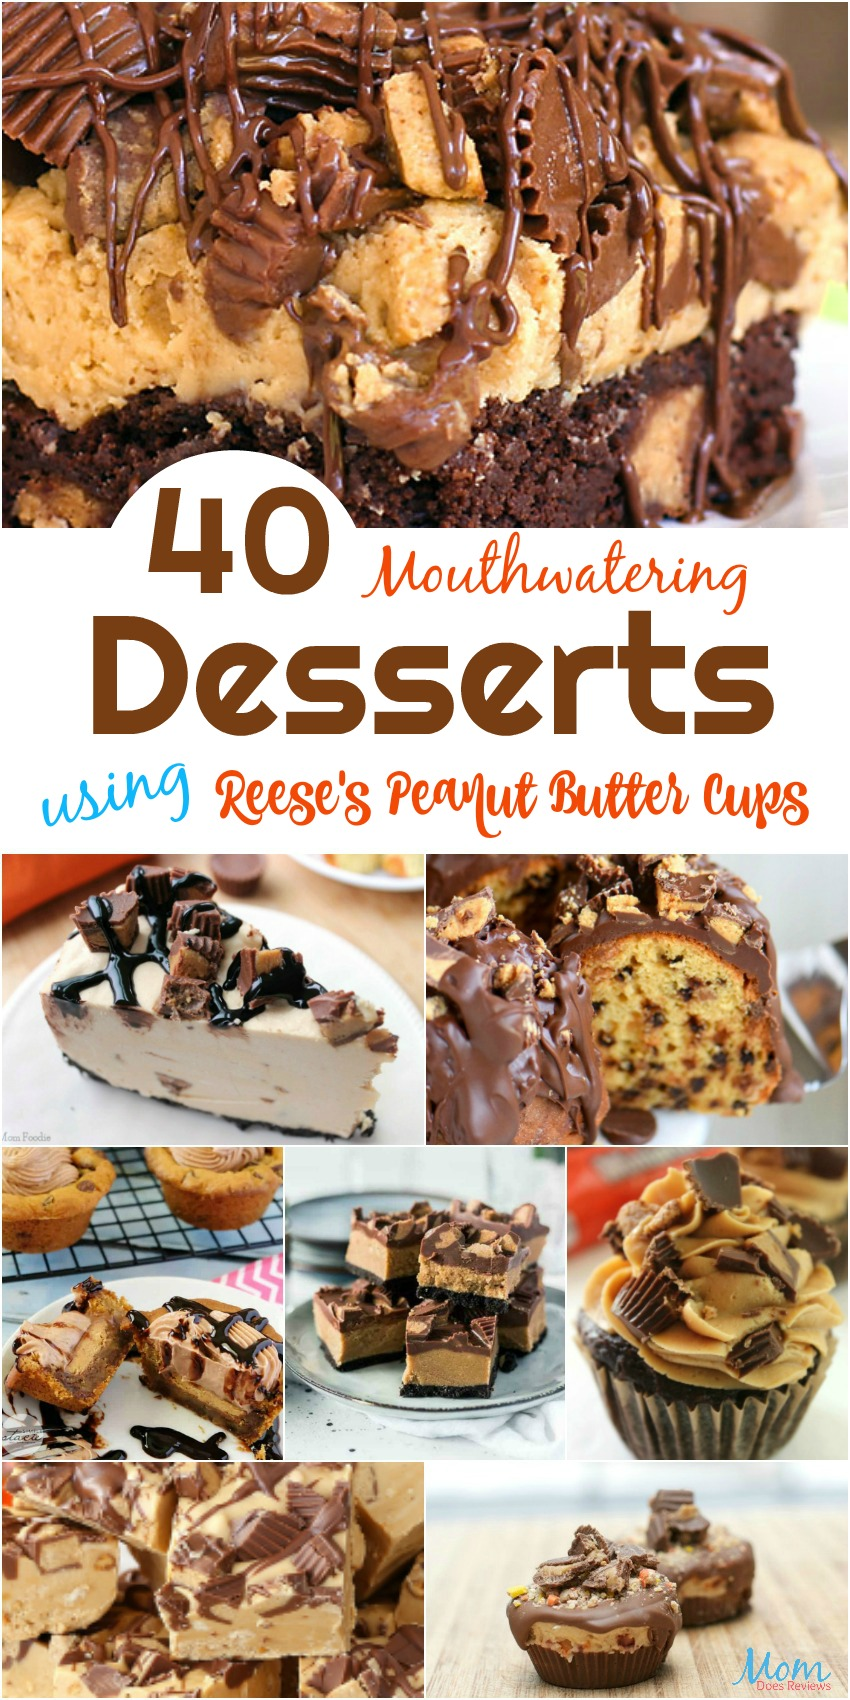 40 Mouthwatering Desserts using Reese's Peanut Butter Cups #recipes #desserts #peanutbutter #chocolate #getinmybelly #foodie